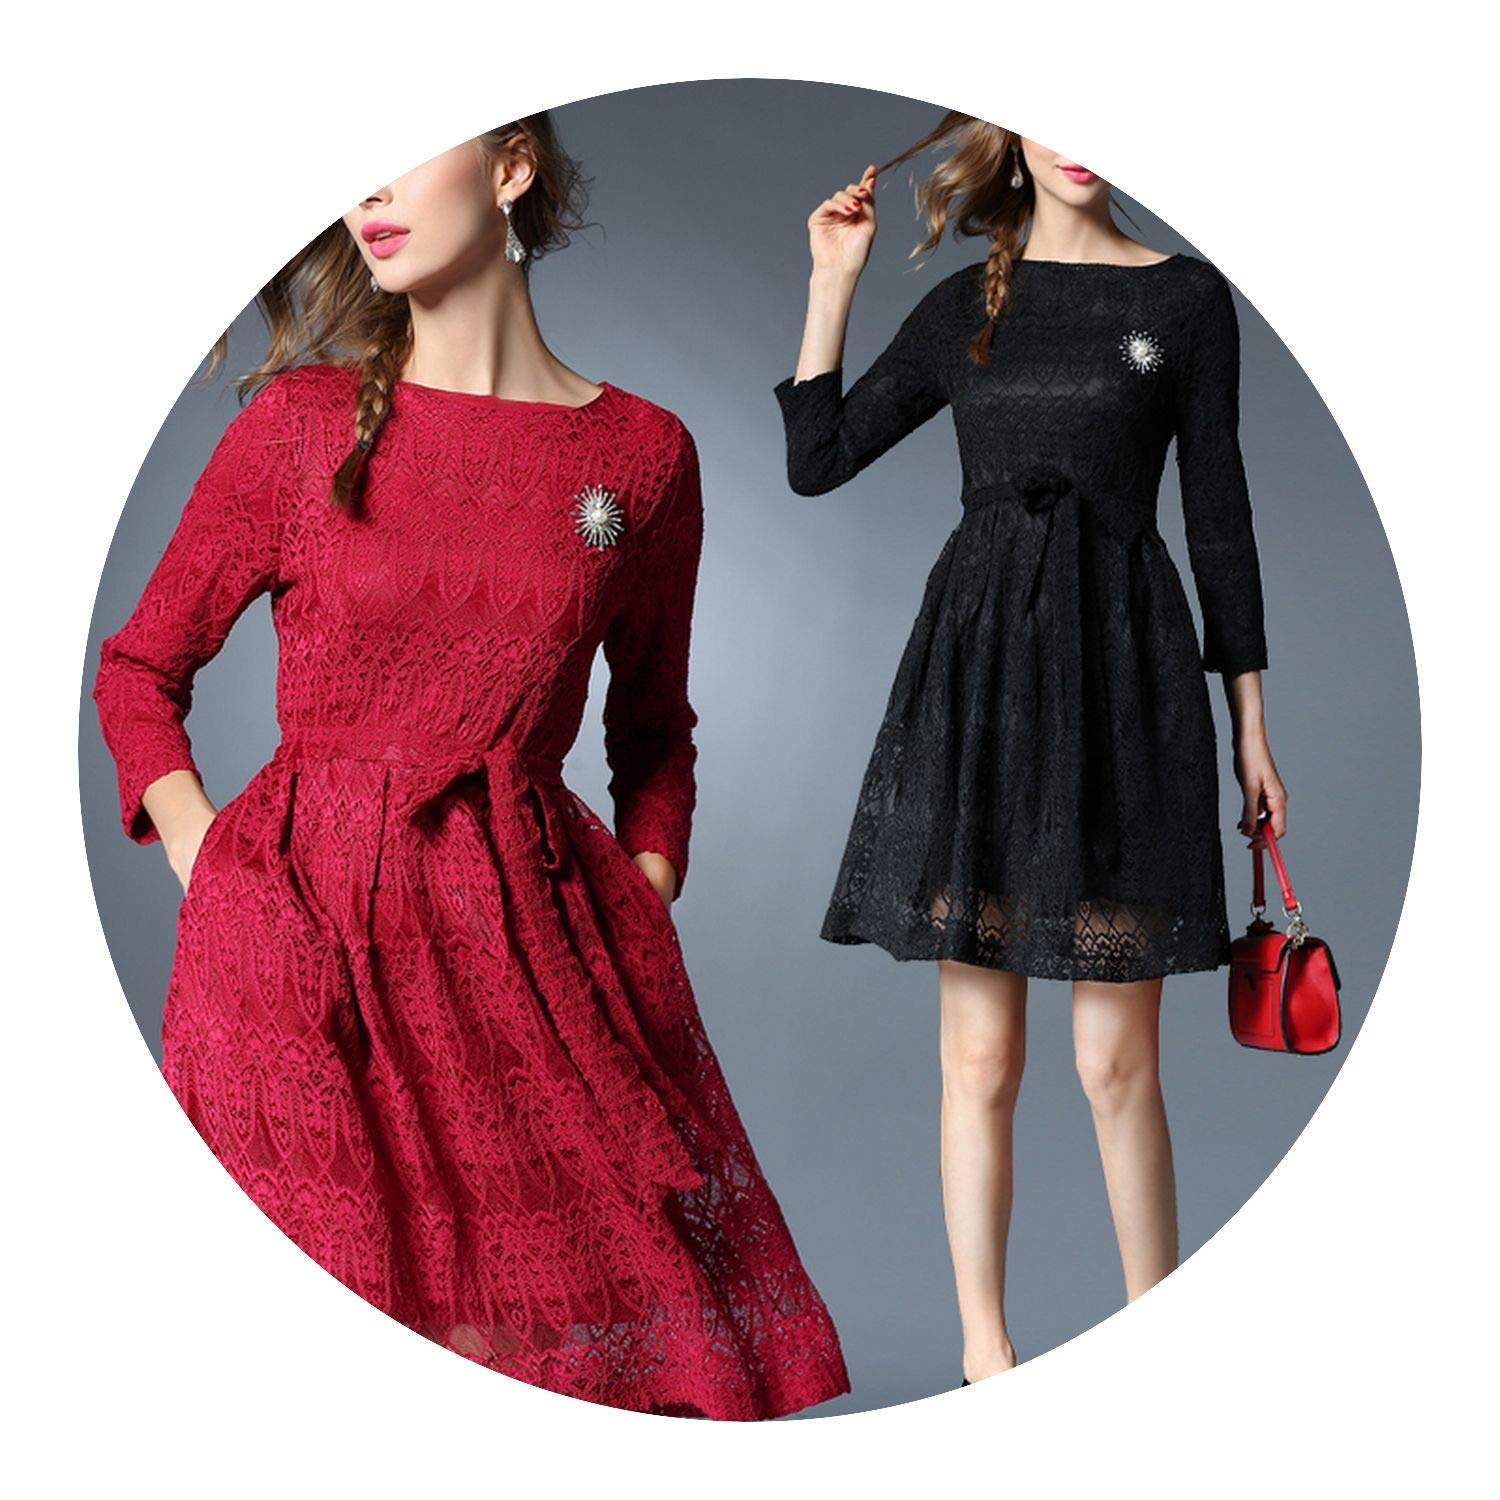 Spring Long Sleeved Black Lace Dress Vestidos Mujer Invierno Autumn Dress Kerst K9276 at Amazon Womens Clothing store: